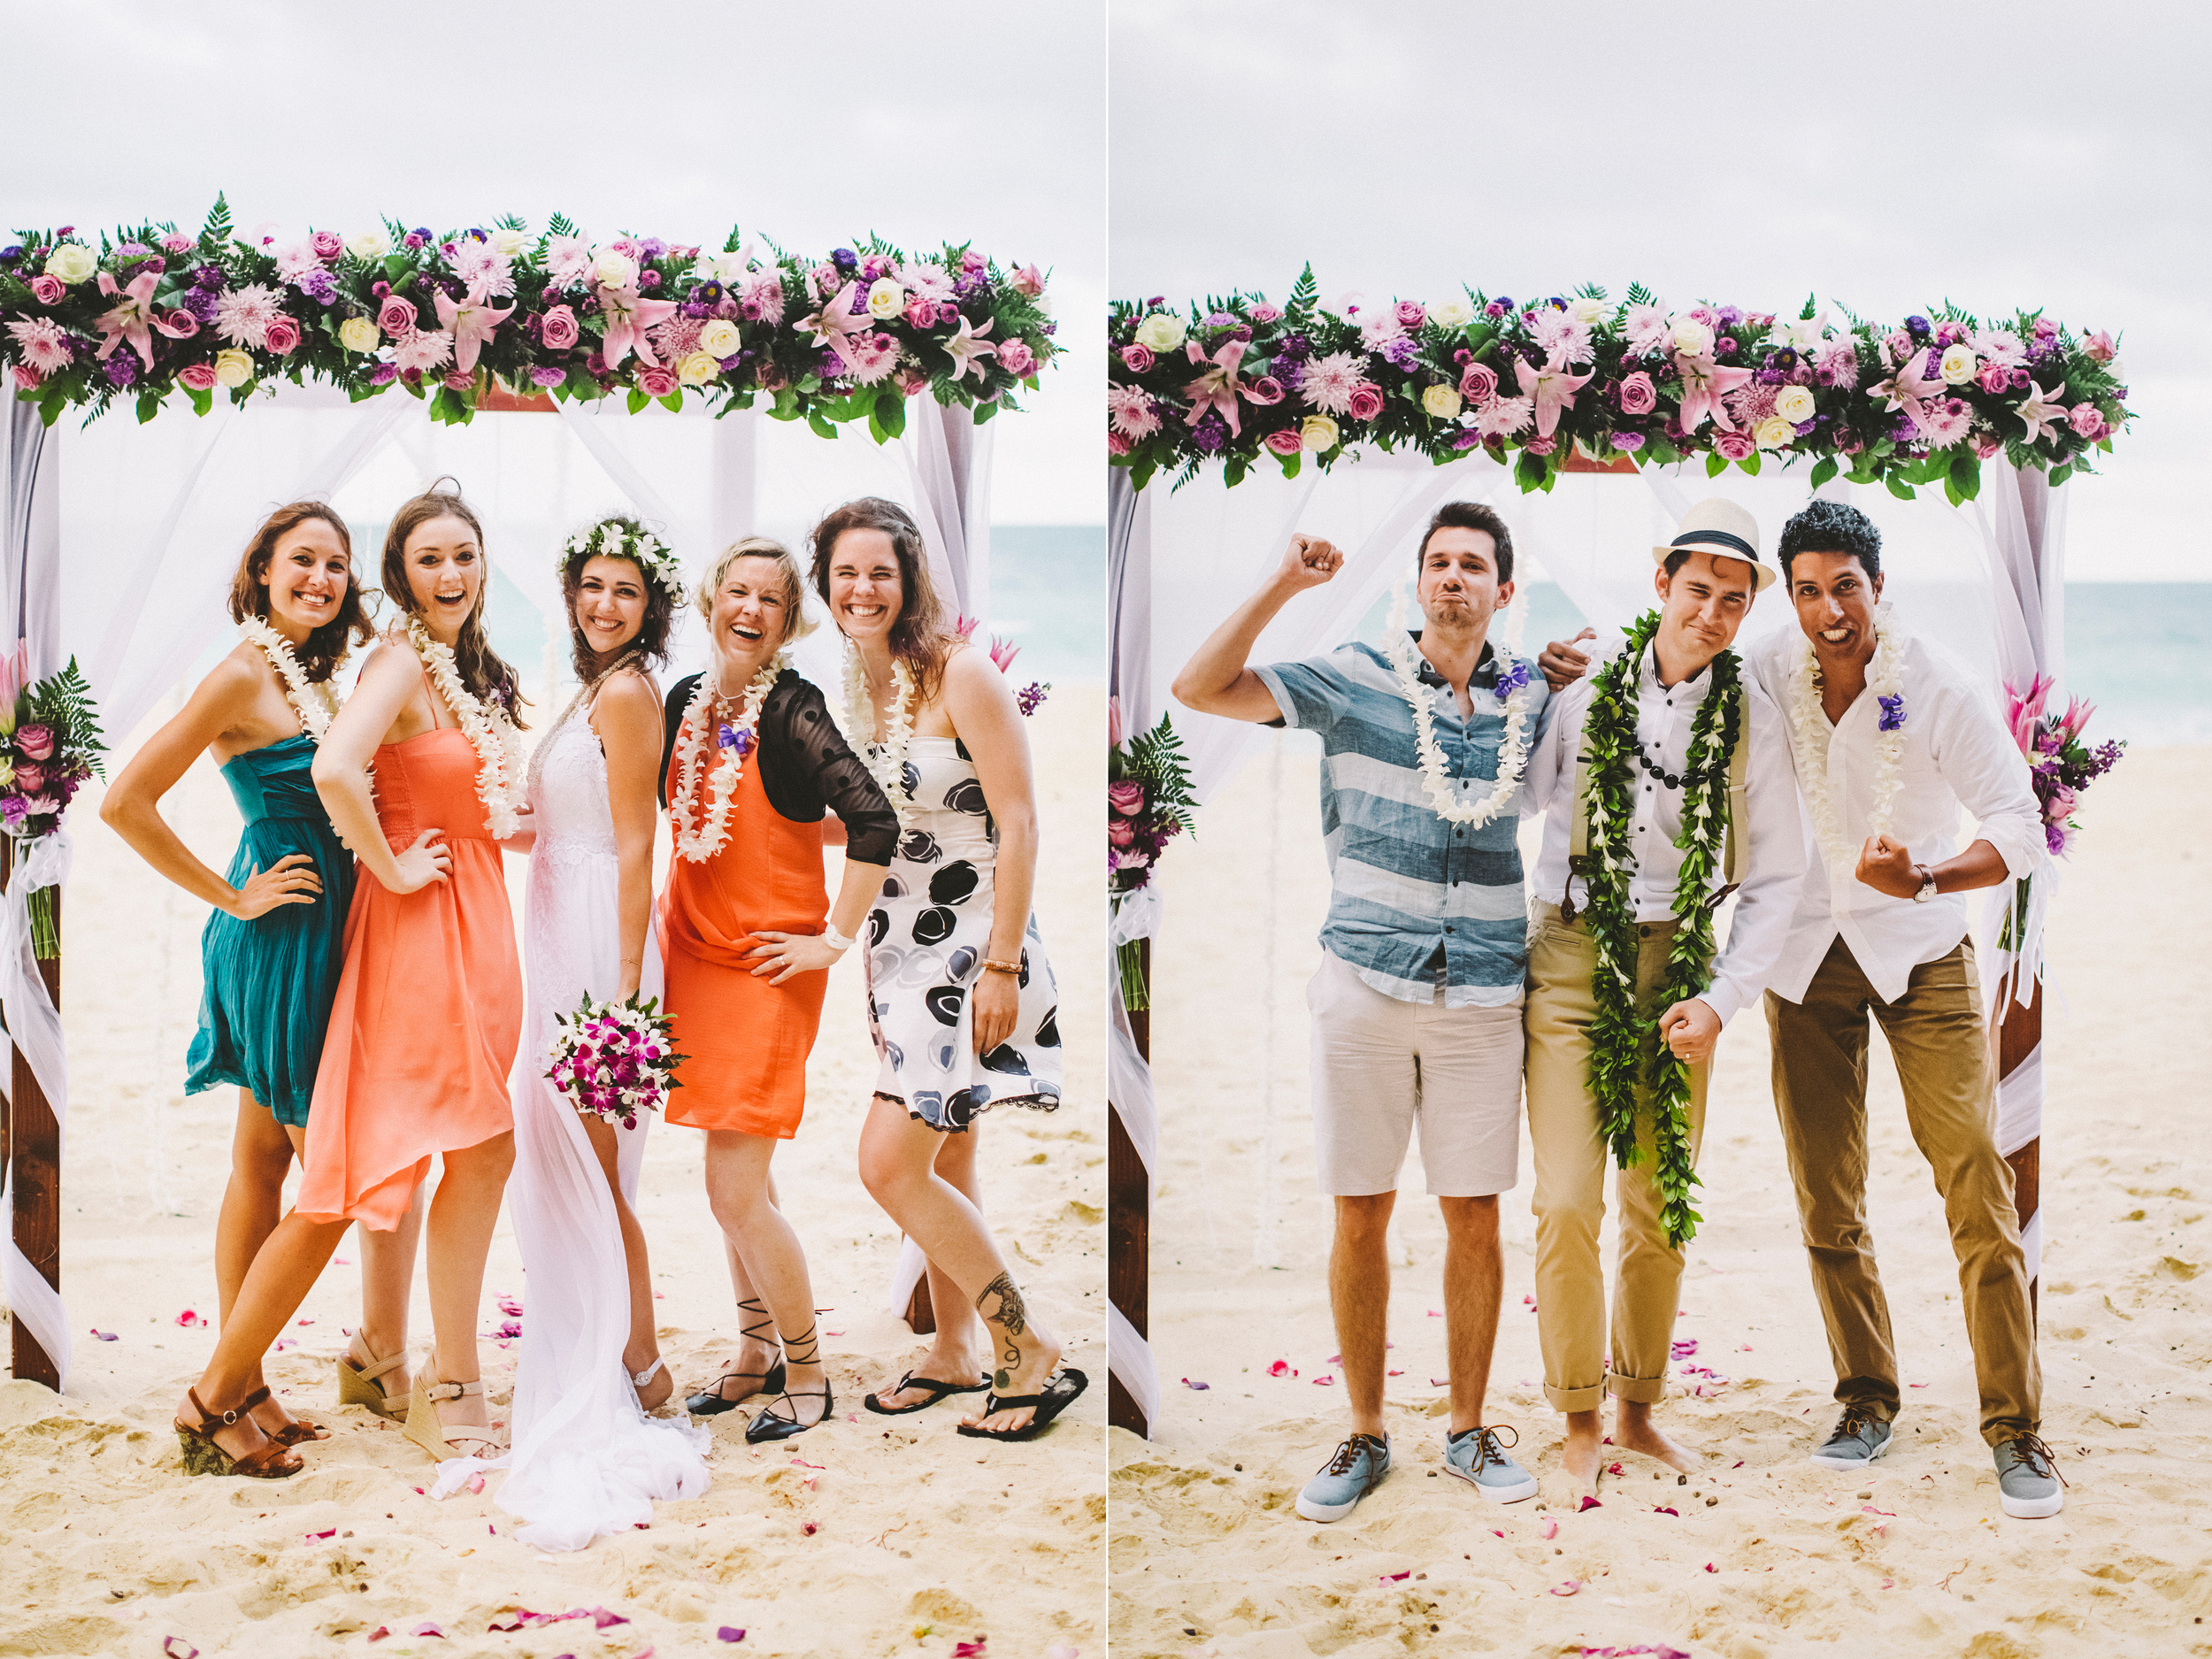 angie-diaz-photography-oahu-destination-wedding-9.jpg